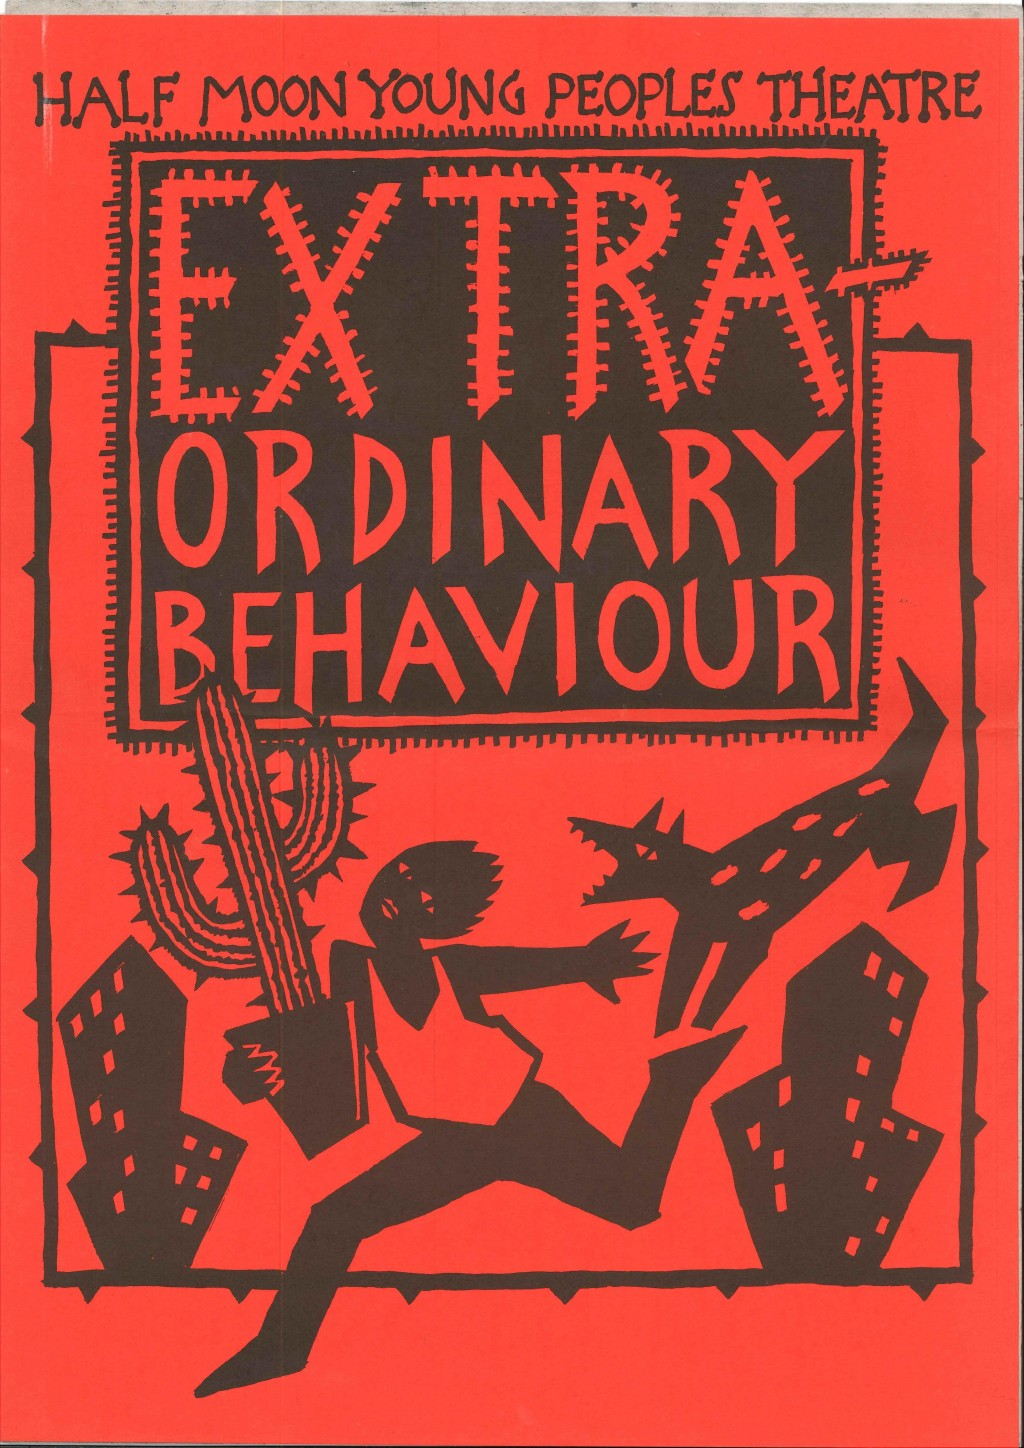 Extra-Ordinary Behaviour Poster